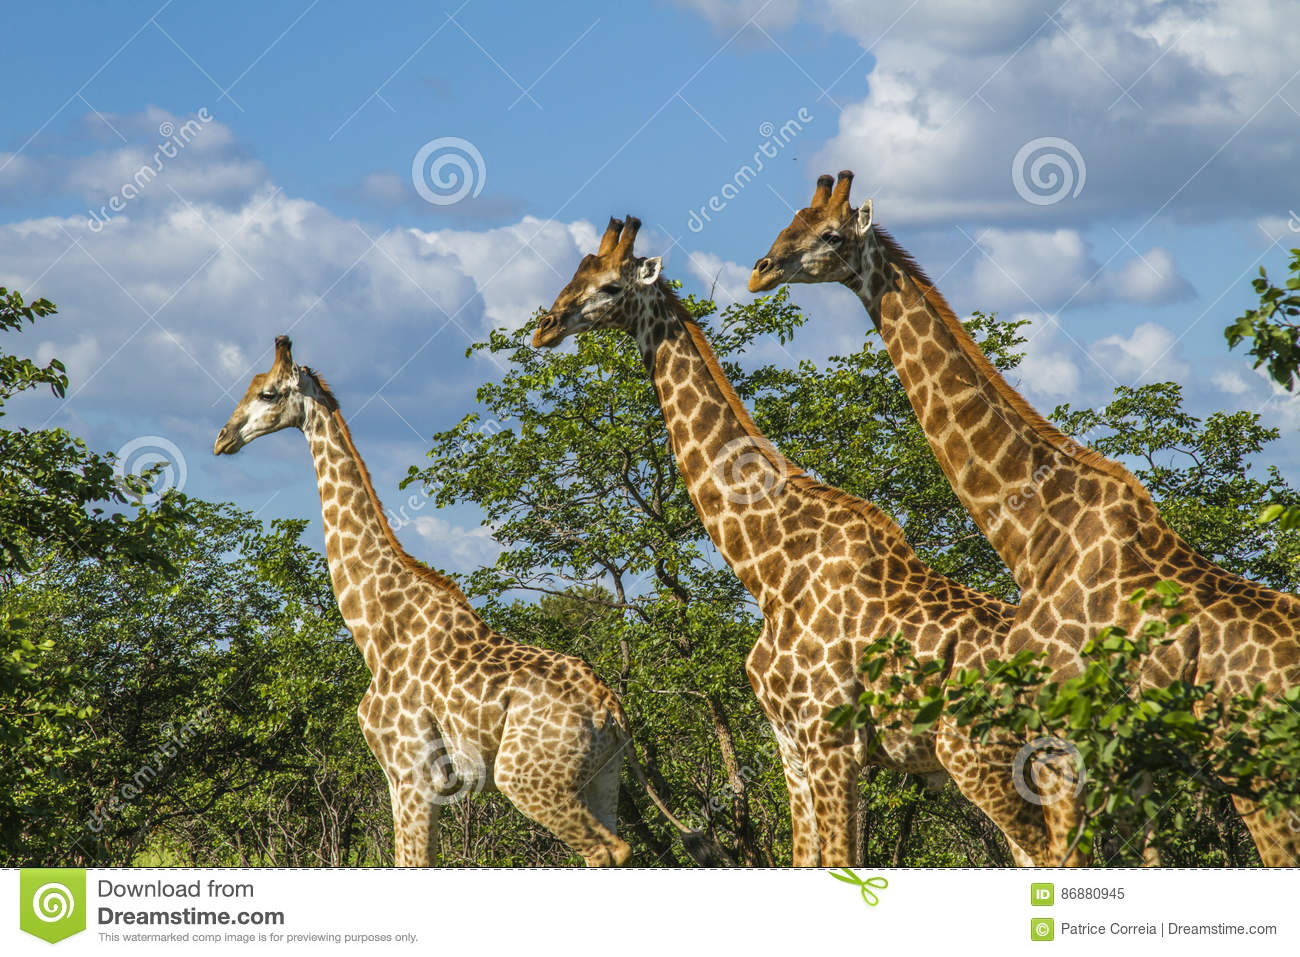 Group of giraffes in the bush in Kruger Park, South Africa